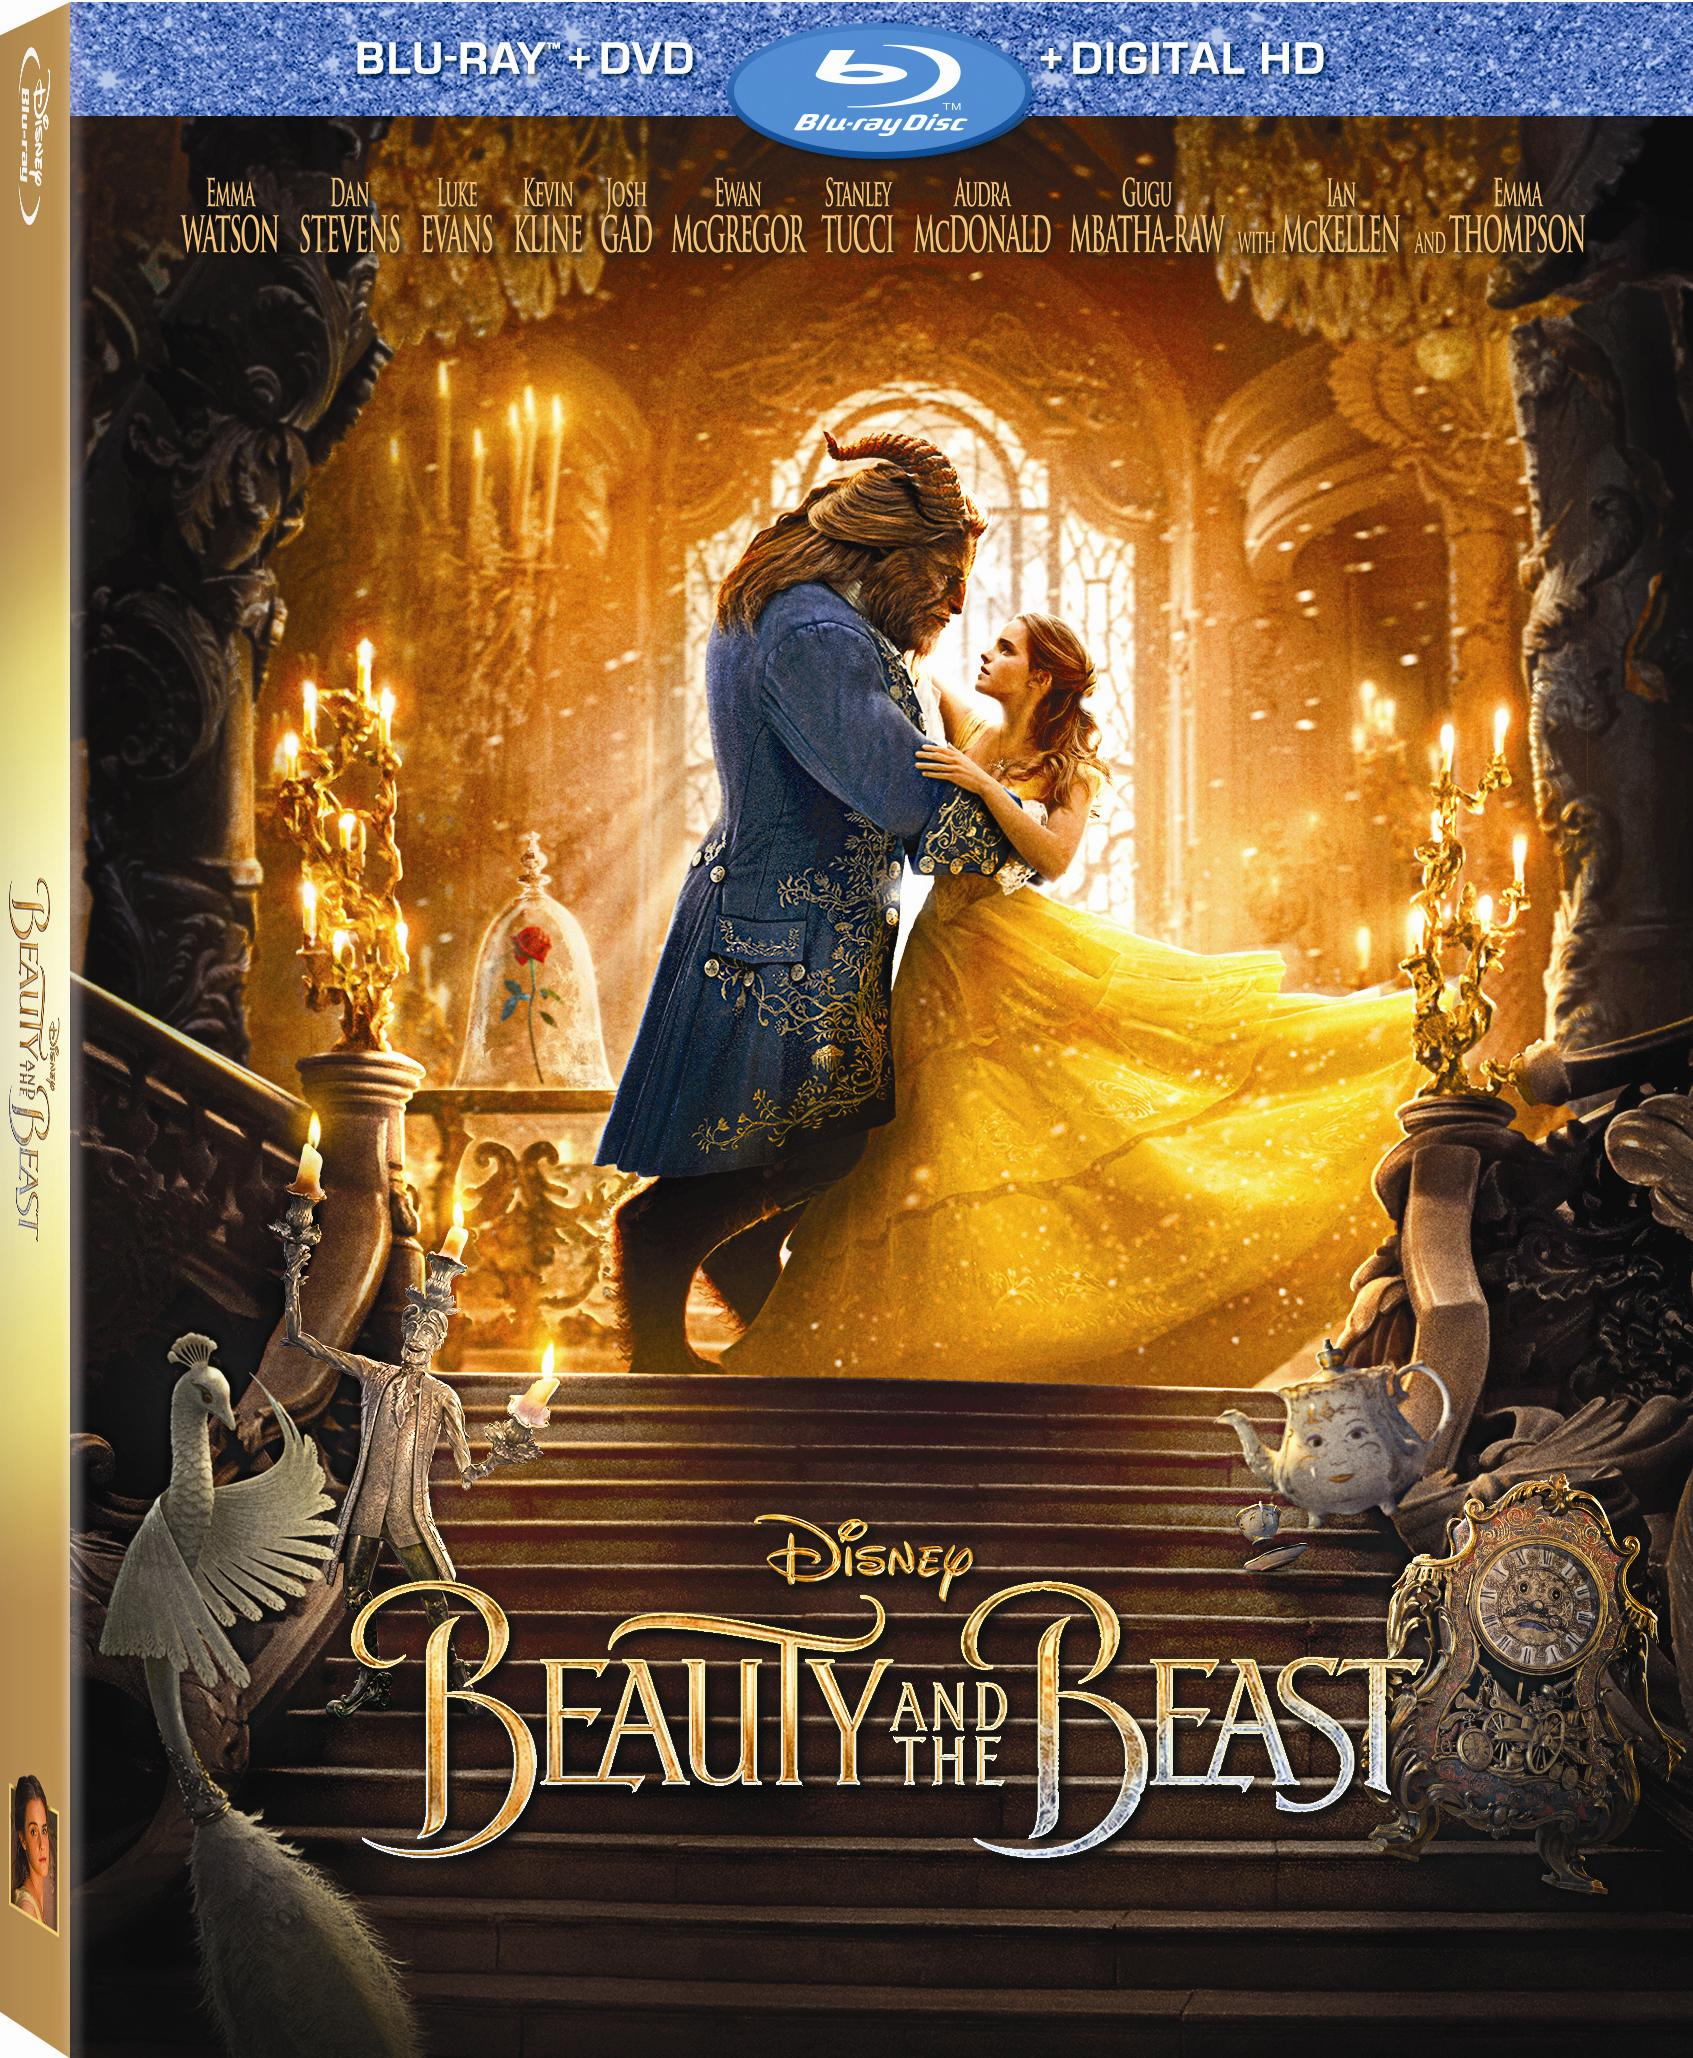 Disney Beauty And The Beast 2017 Blu Ray Cover Screen Connections